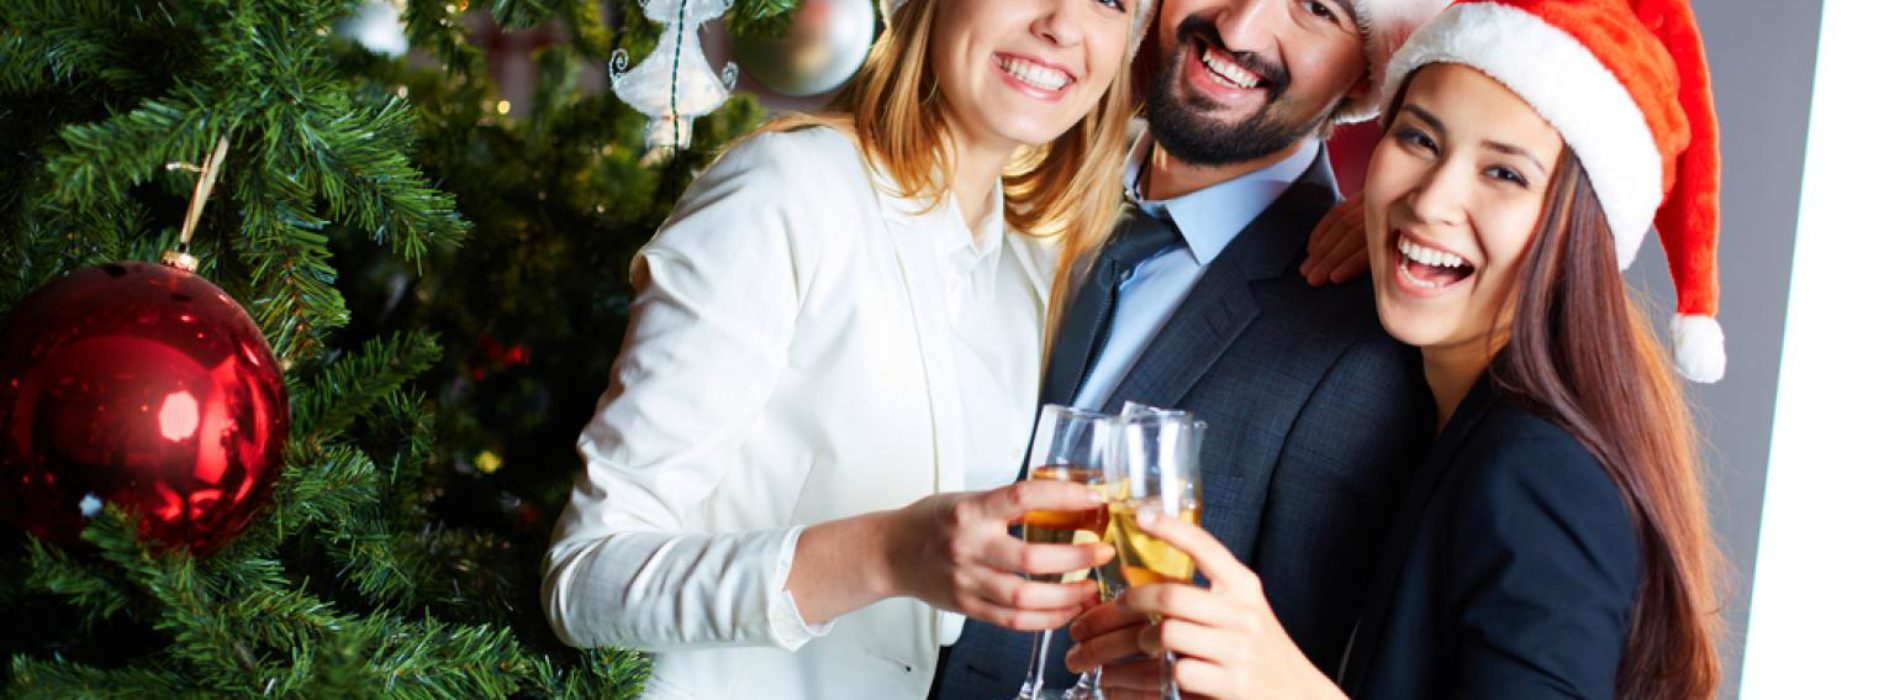 Edit #21: Pervnadoes are Threatening Office Christmas Parties Everywhere